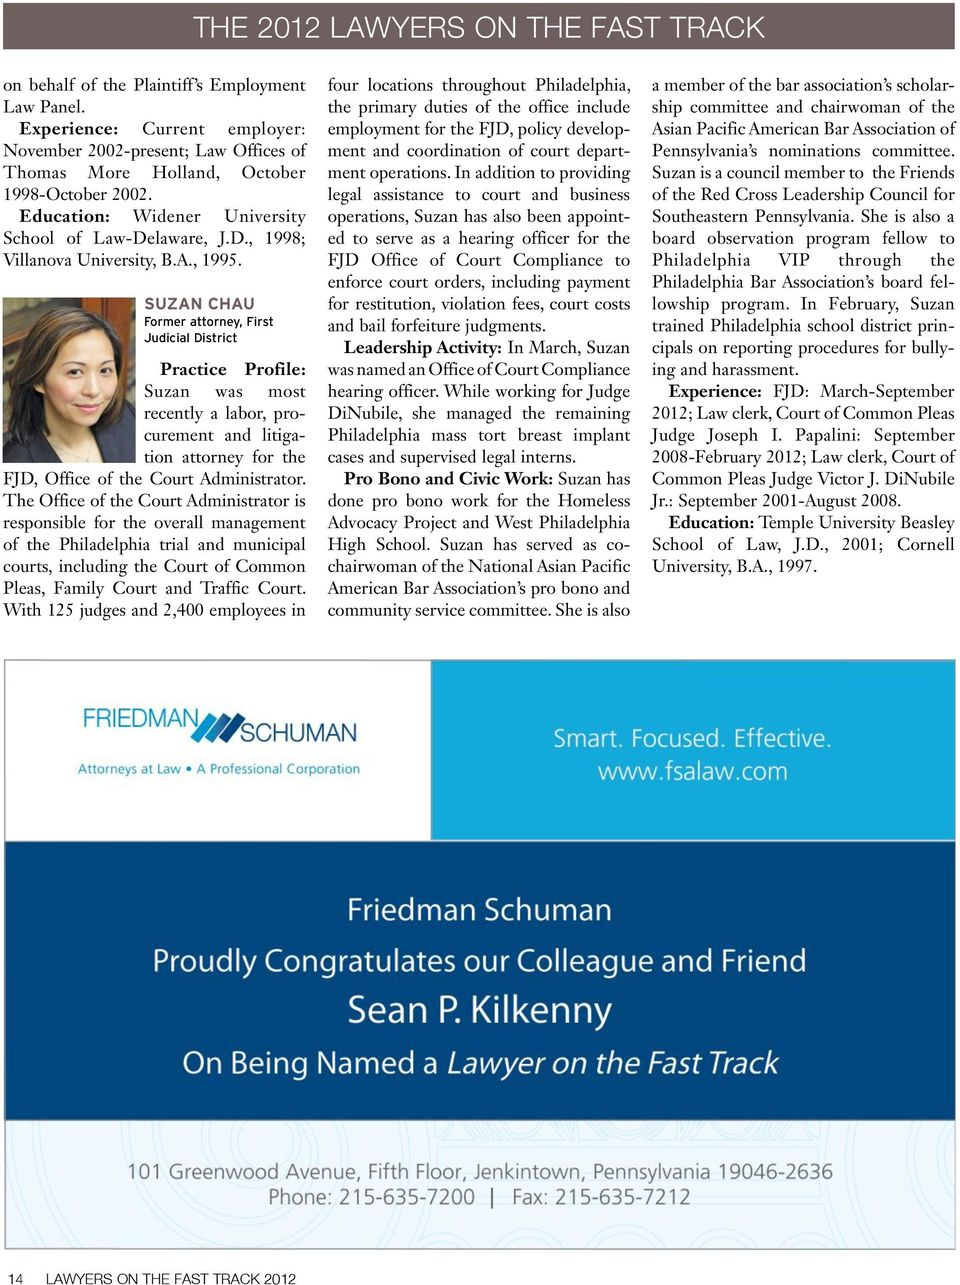 suzan Chau Former attorney, First Judicial District Suzan was most recently a labor, procurement and litigation attorney for the FJD, Office of the Court Administrator.